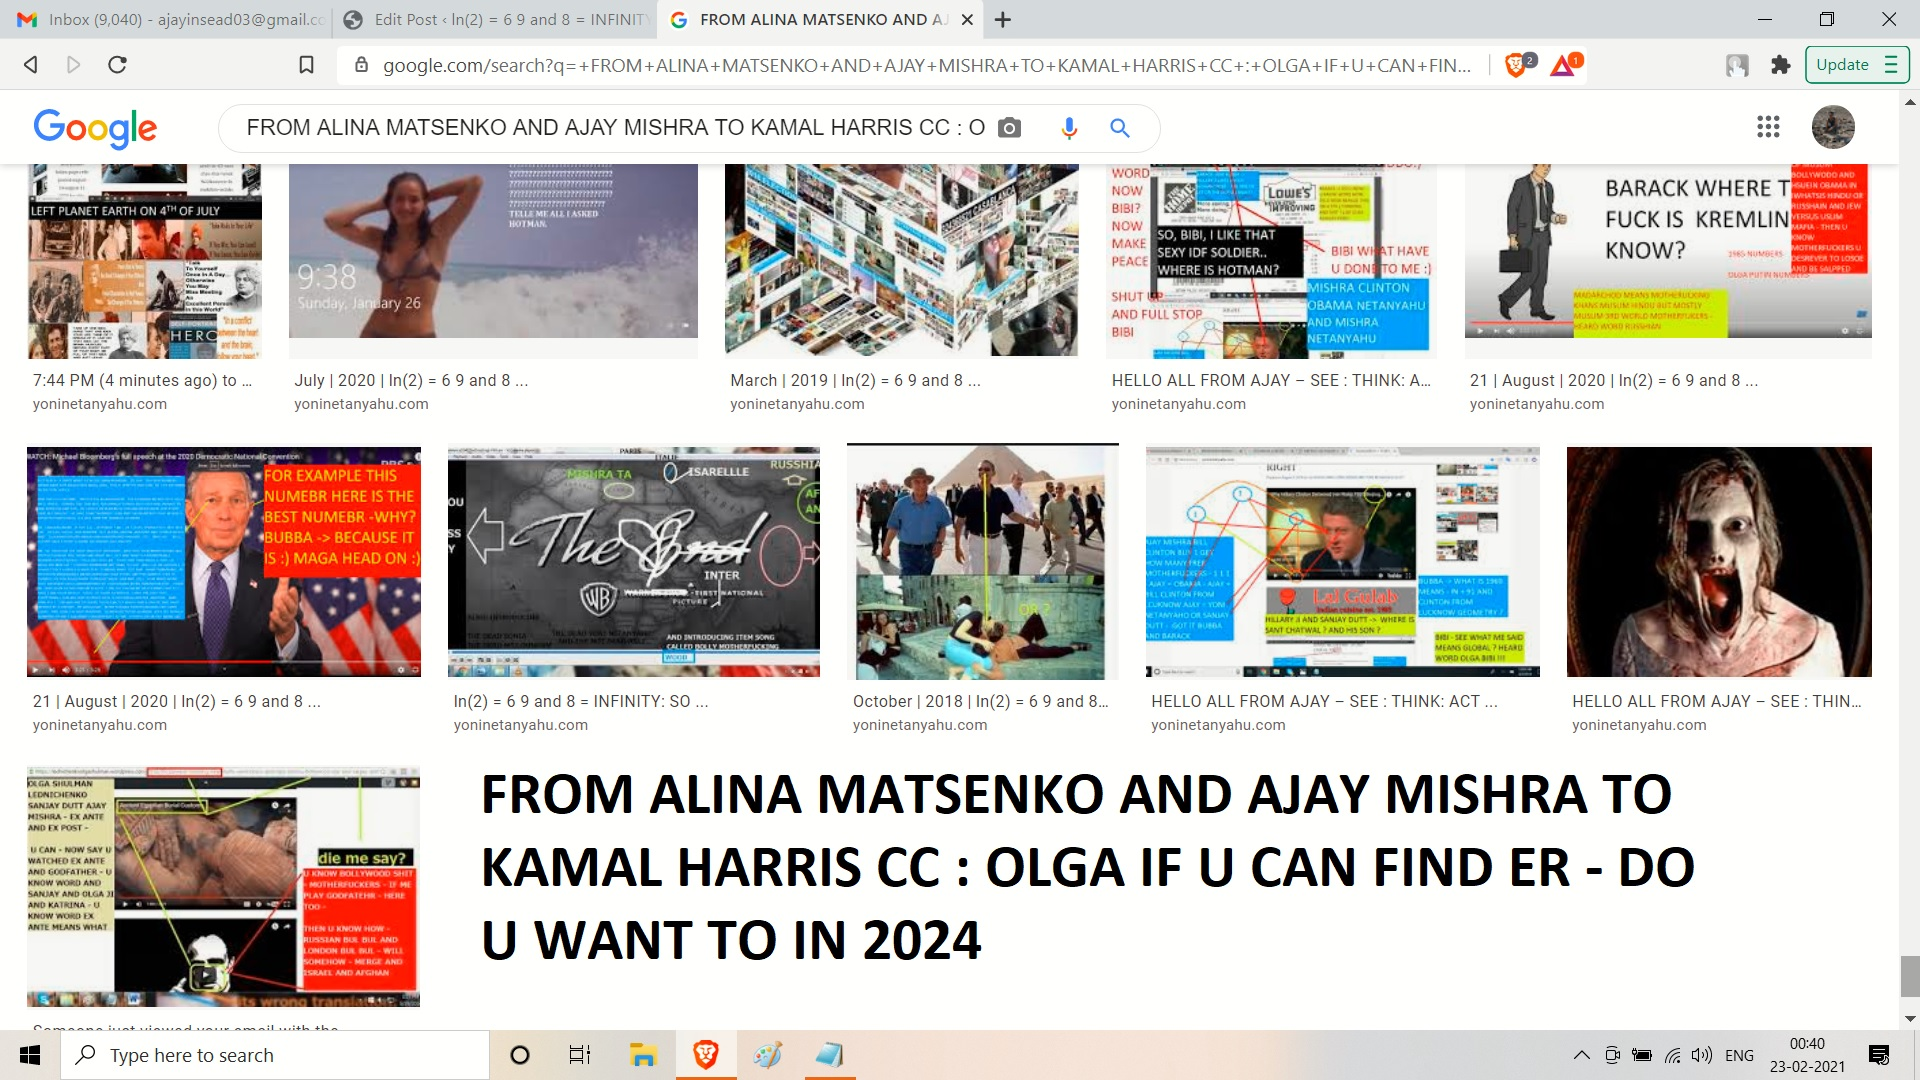 FROM ALINA MATSENKO AND AJAY MISHRA TO KAMAL HARRIS CC OLGA IF U CAN FIND HER - DO U WANT TO IN 2024